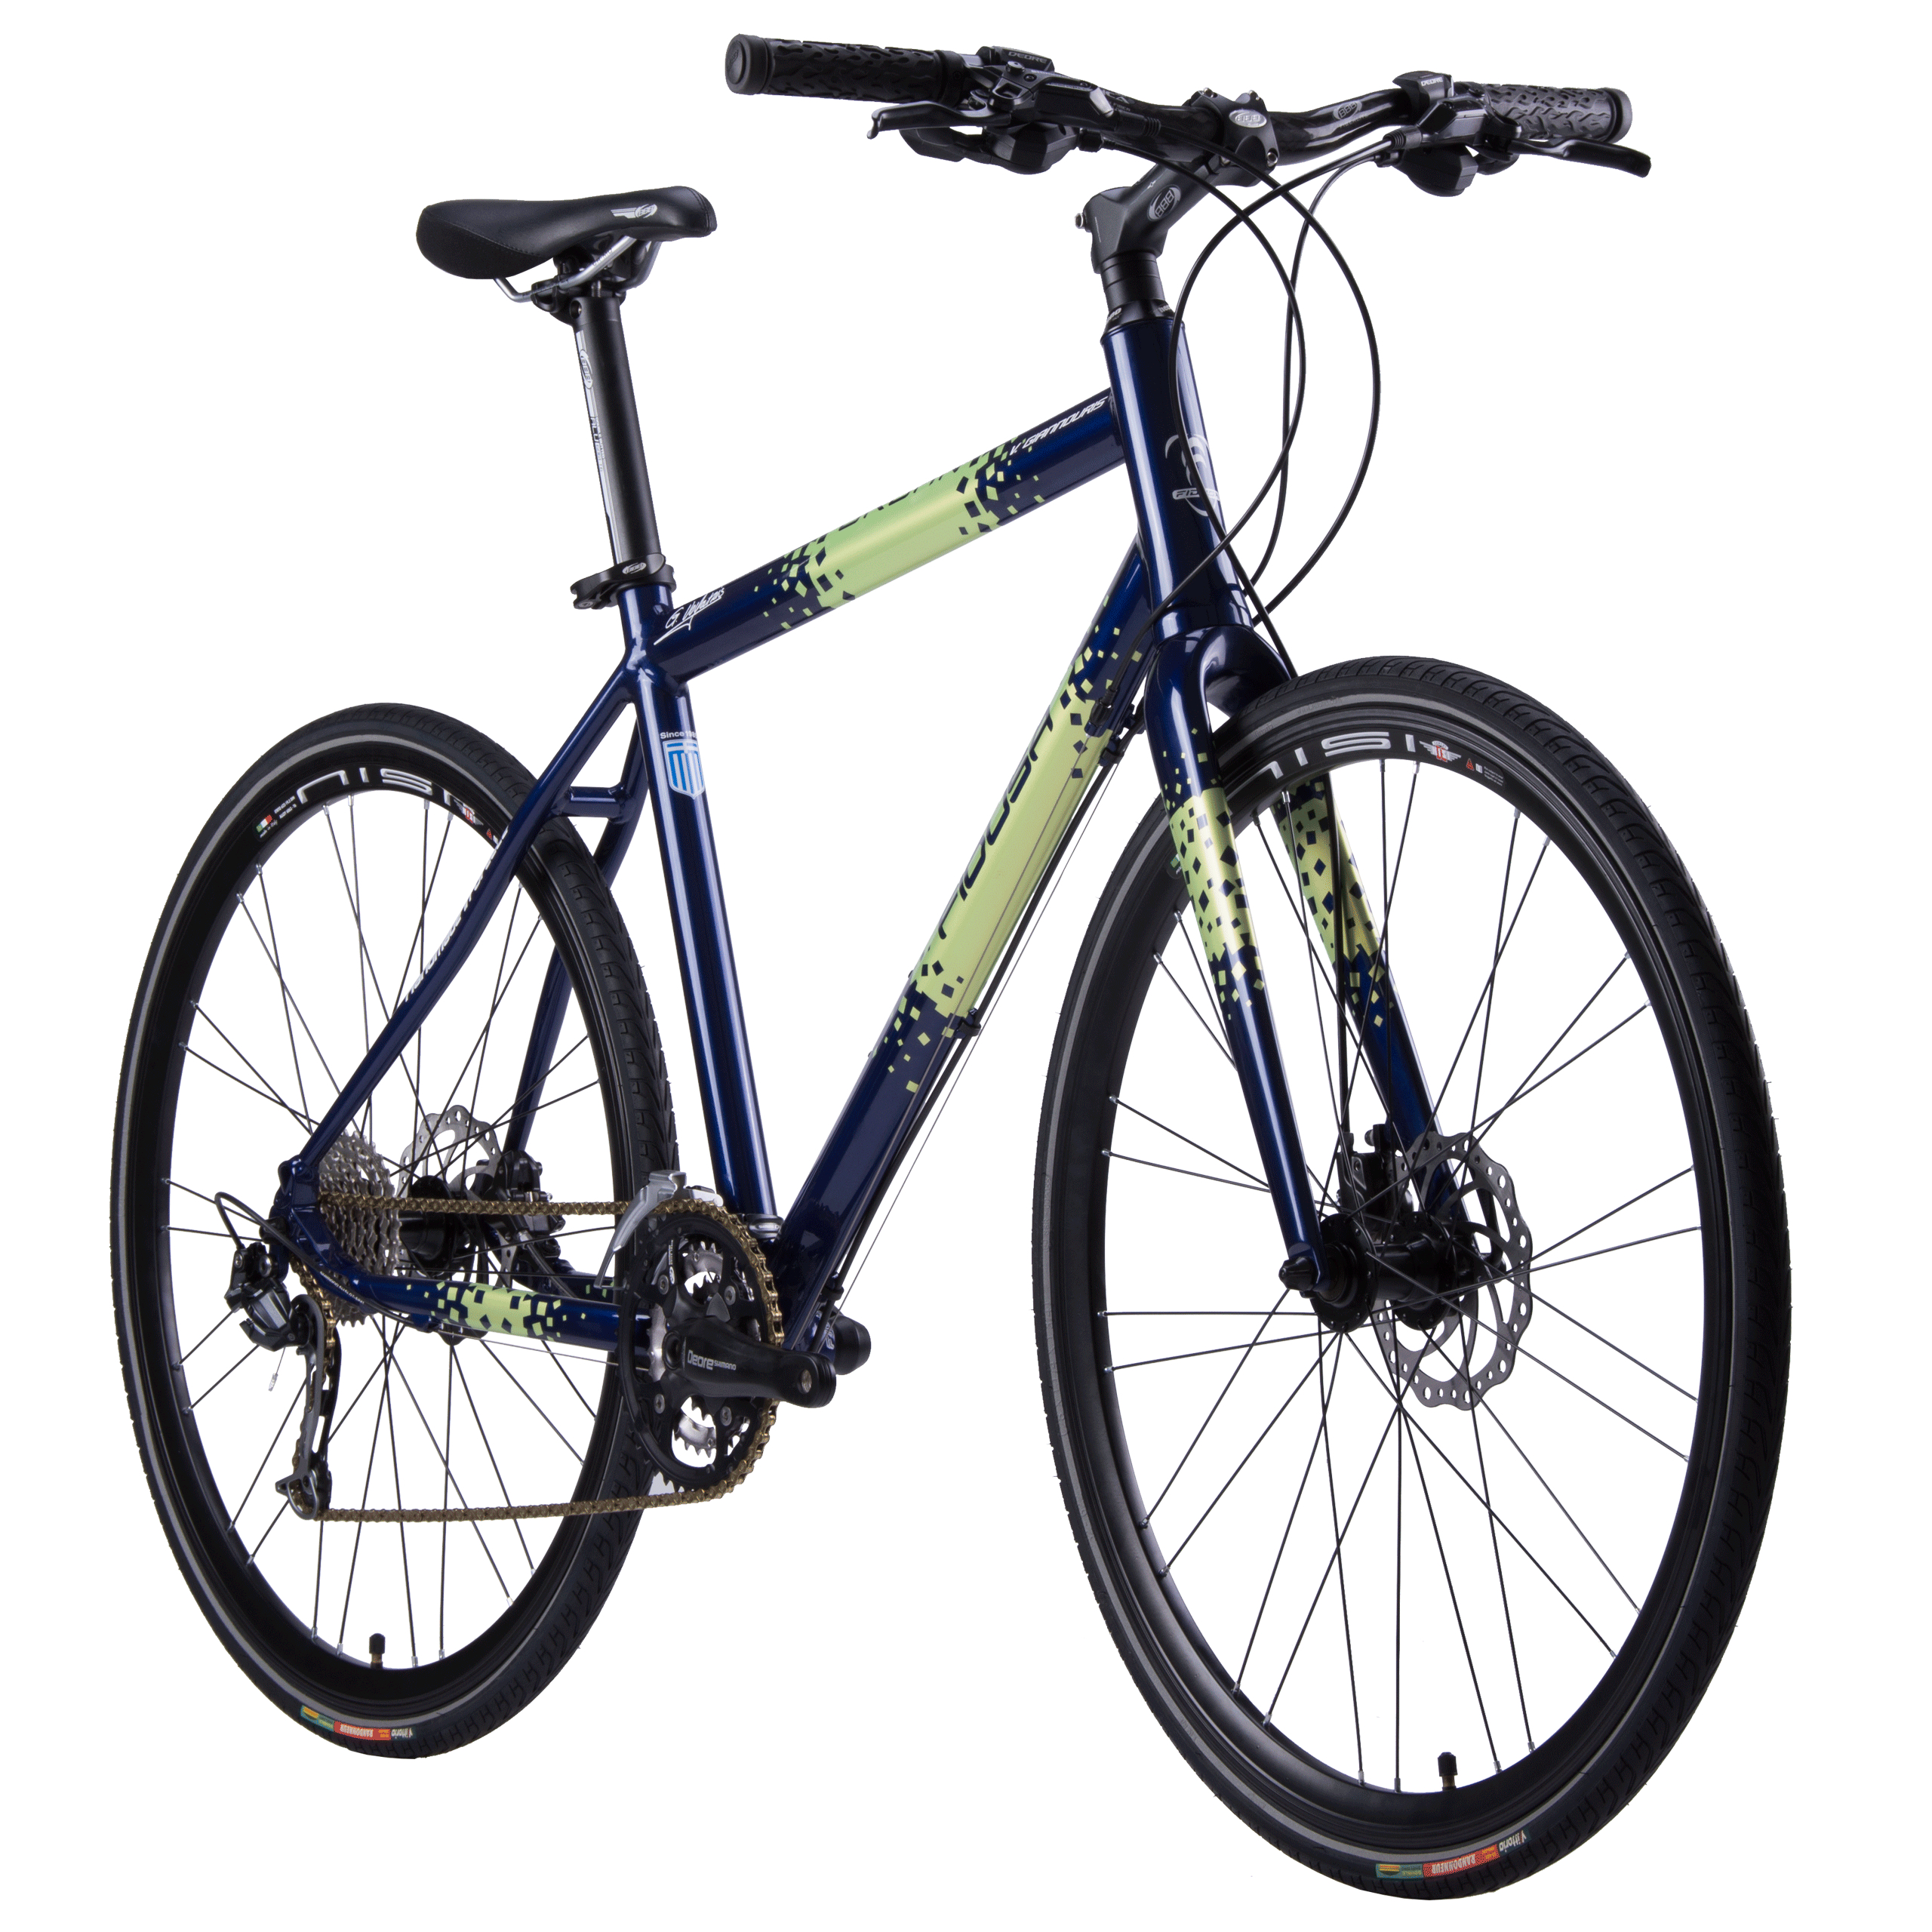 handmade-alloy-trekking-city-hybrid-bicycle11s Our Bicycles